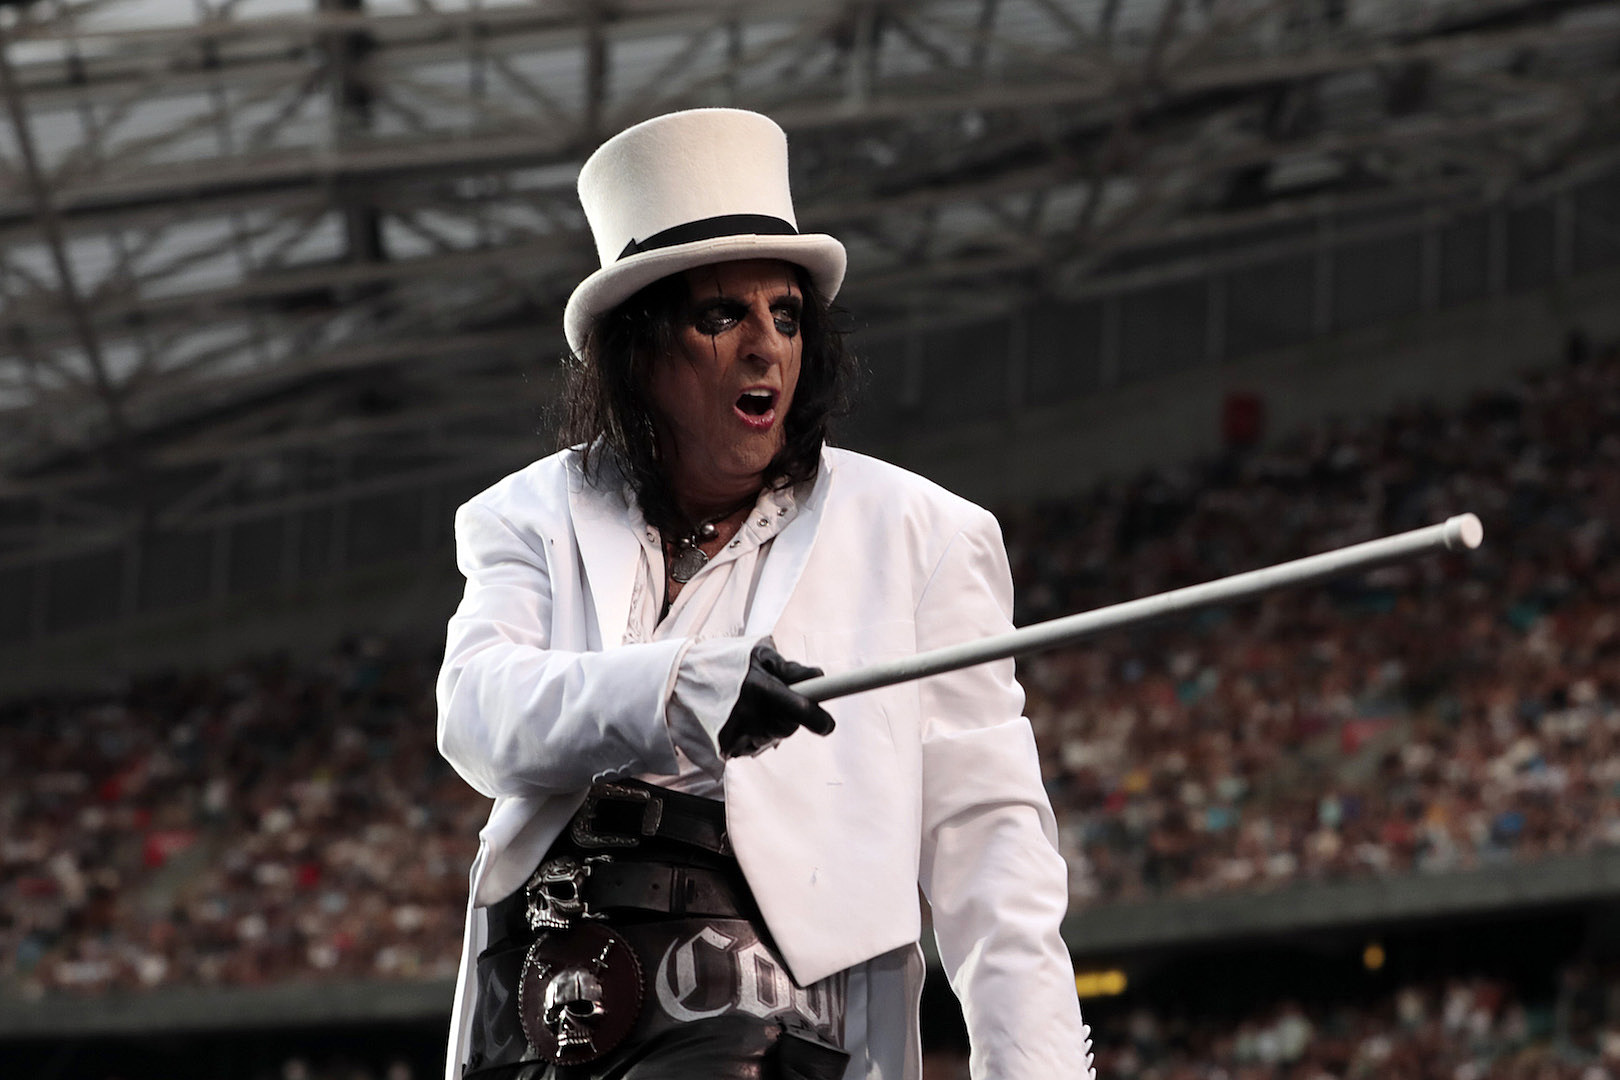 Alice Cooper: Only One Rock Musician Calls Me by My Birth Name